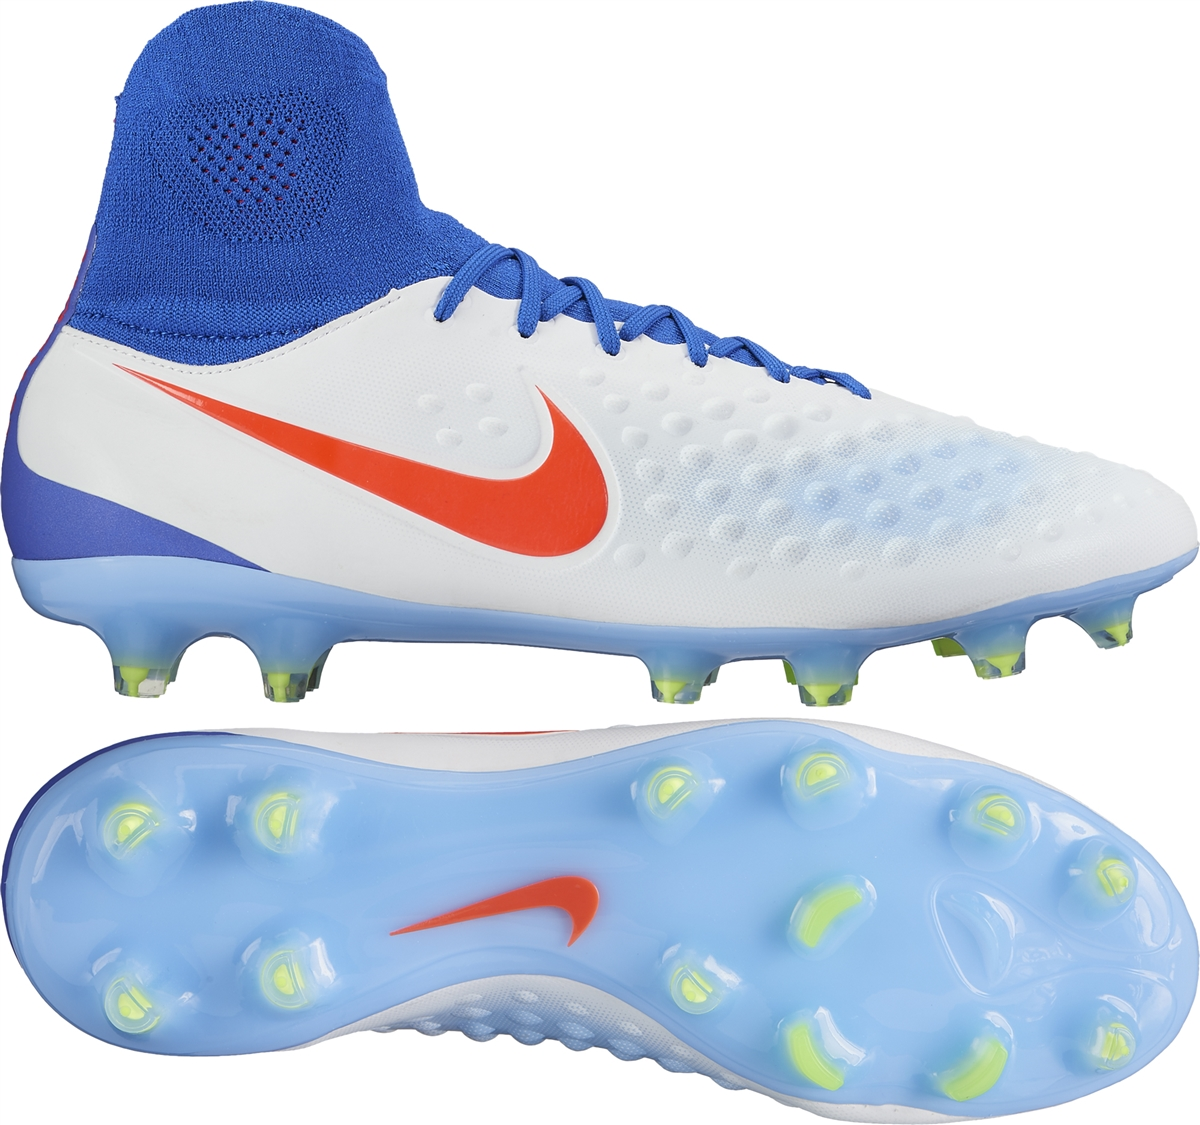 sports shoes a68be 397a5 ... release date nike womens magista orden ii fg soccer cleats white bright  crimson racer blue 99376